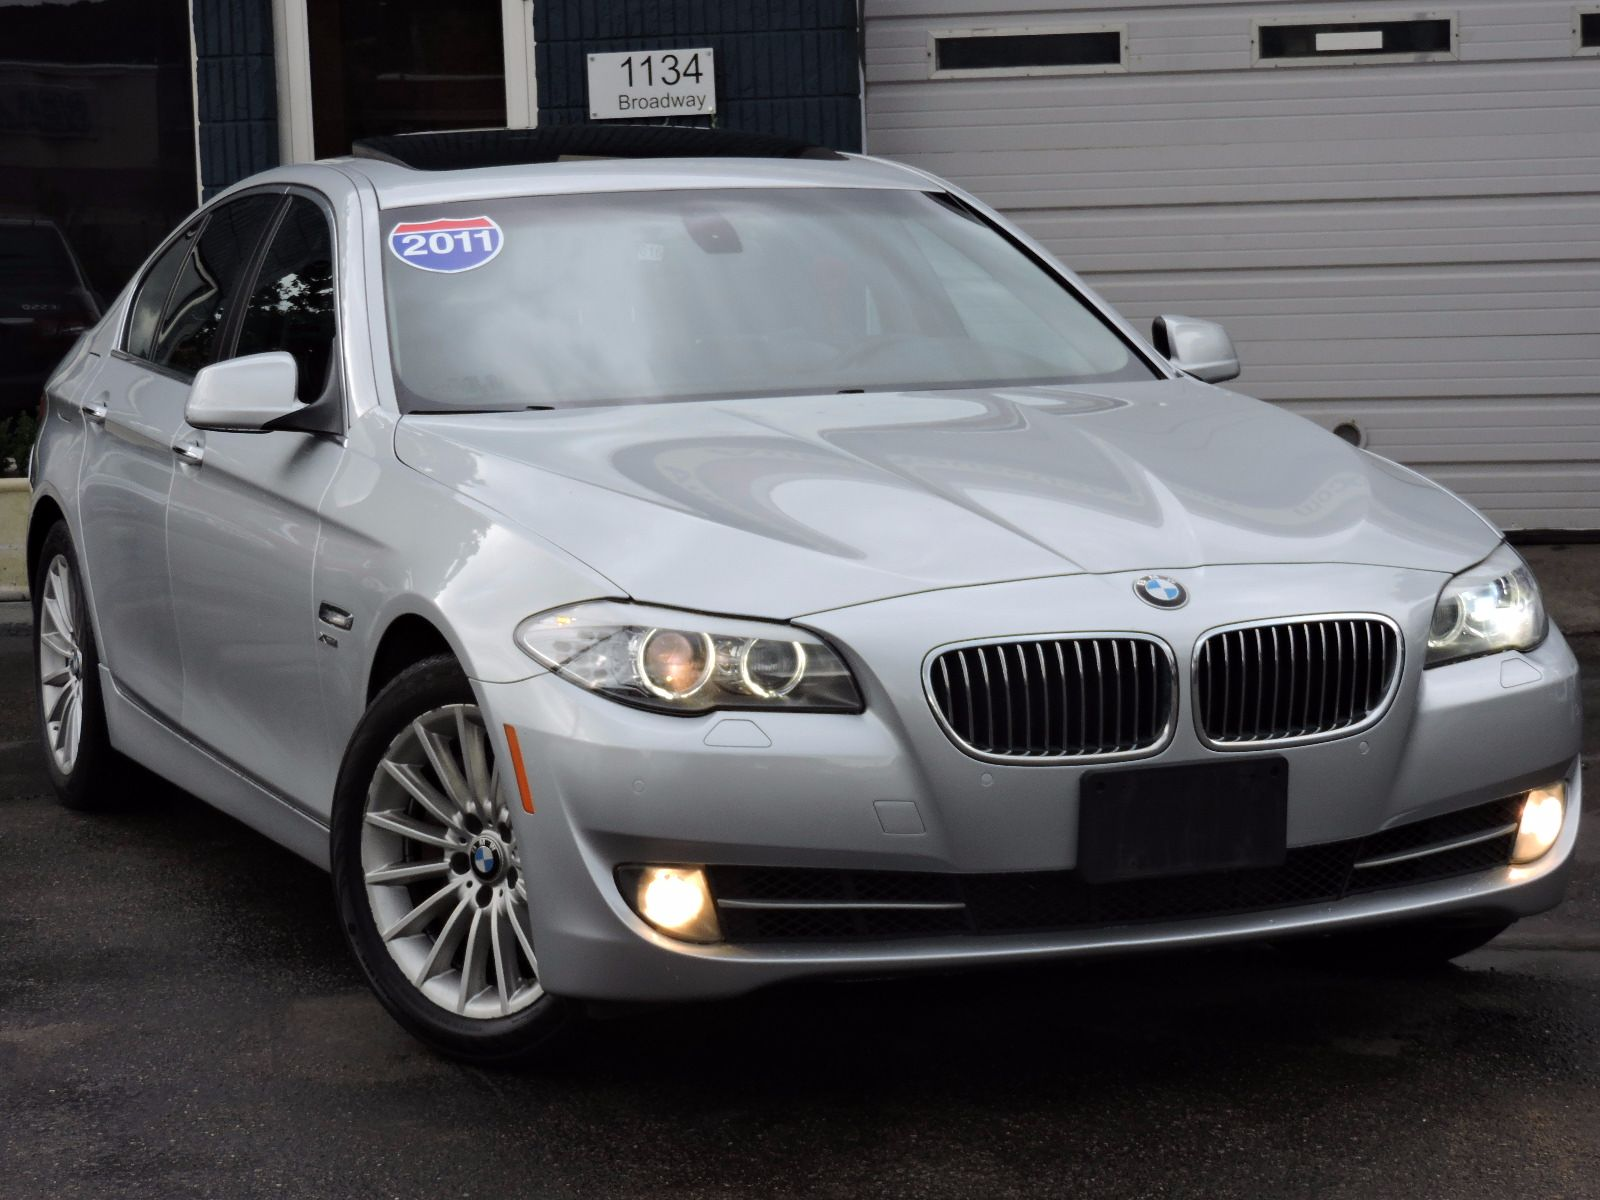 Used BMW I XDrive EXL At Saugus Auto Mall - 5351 bmw